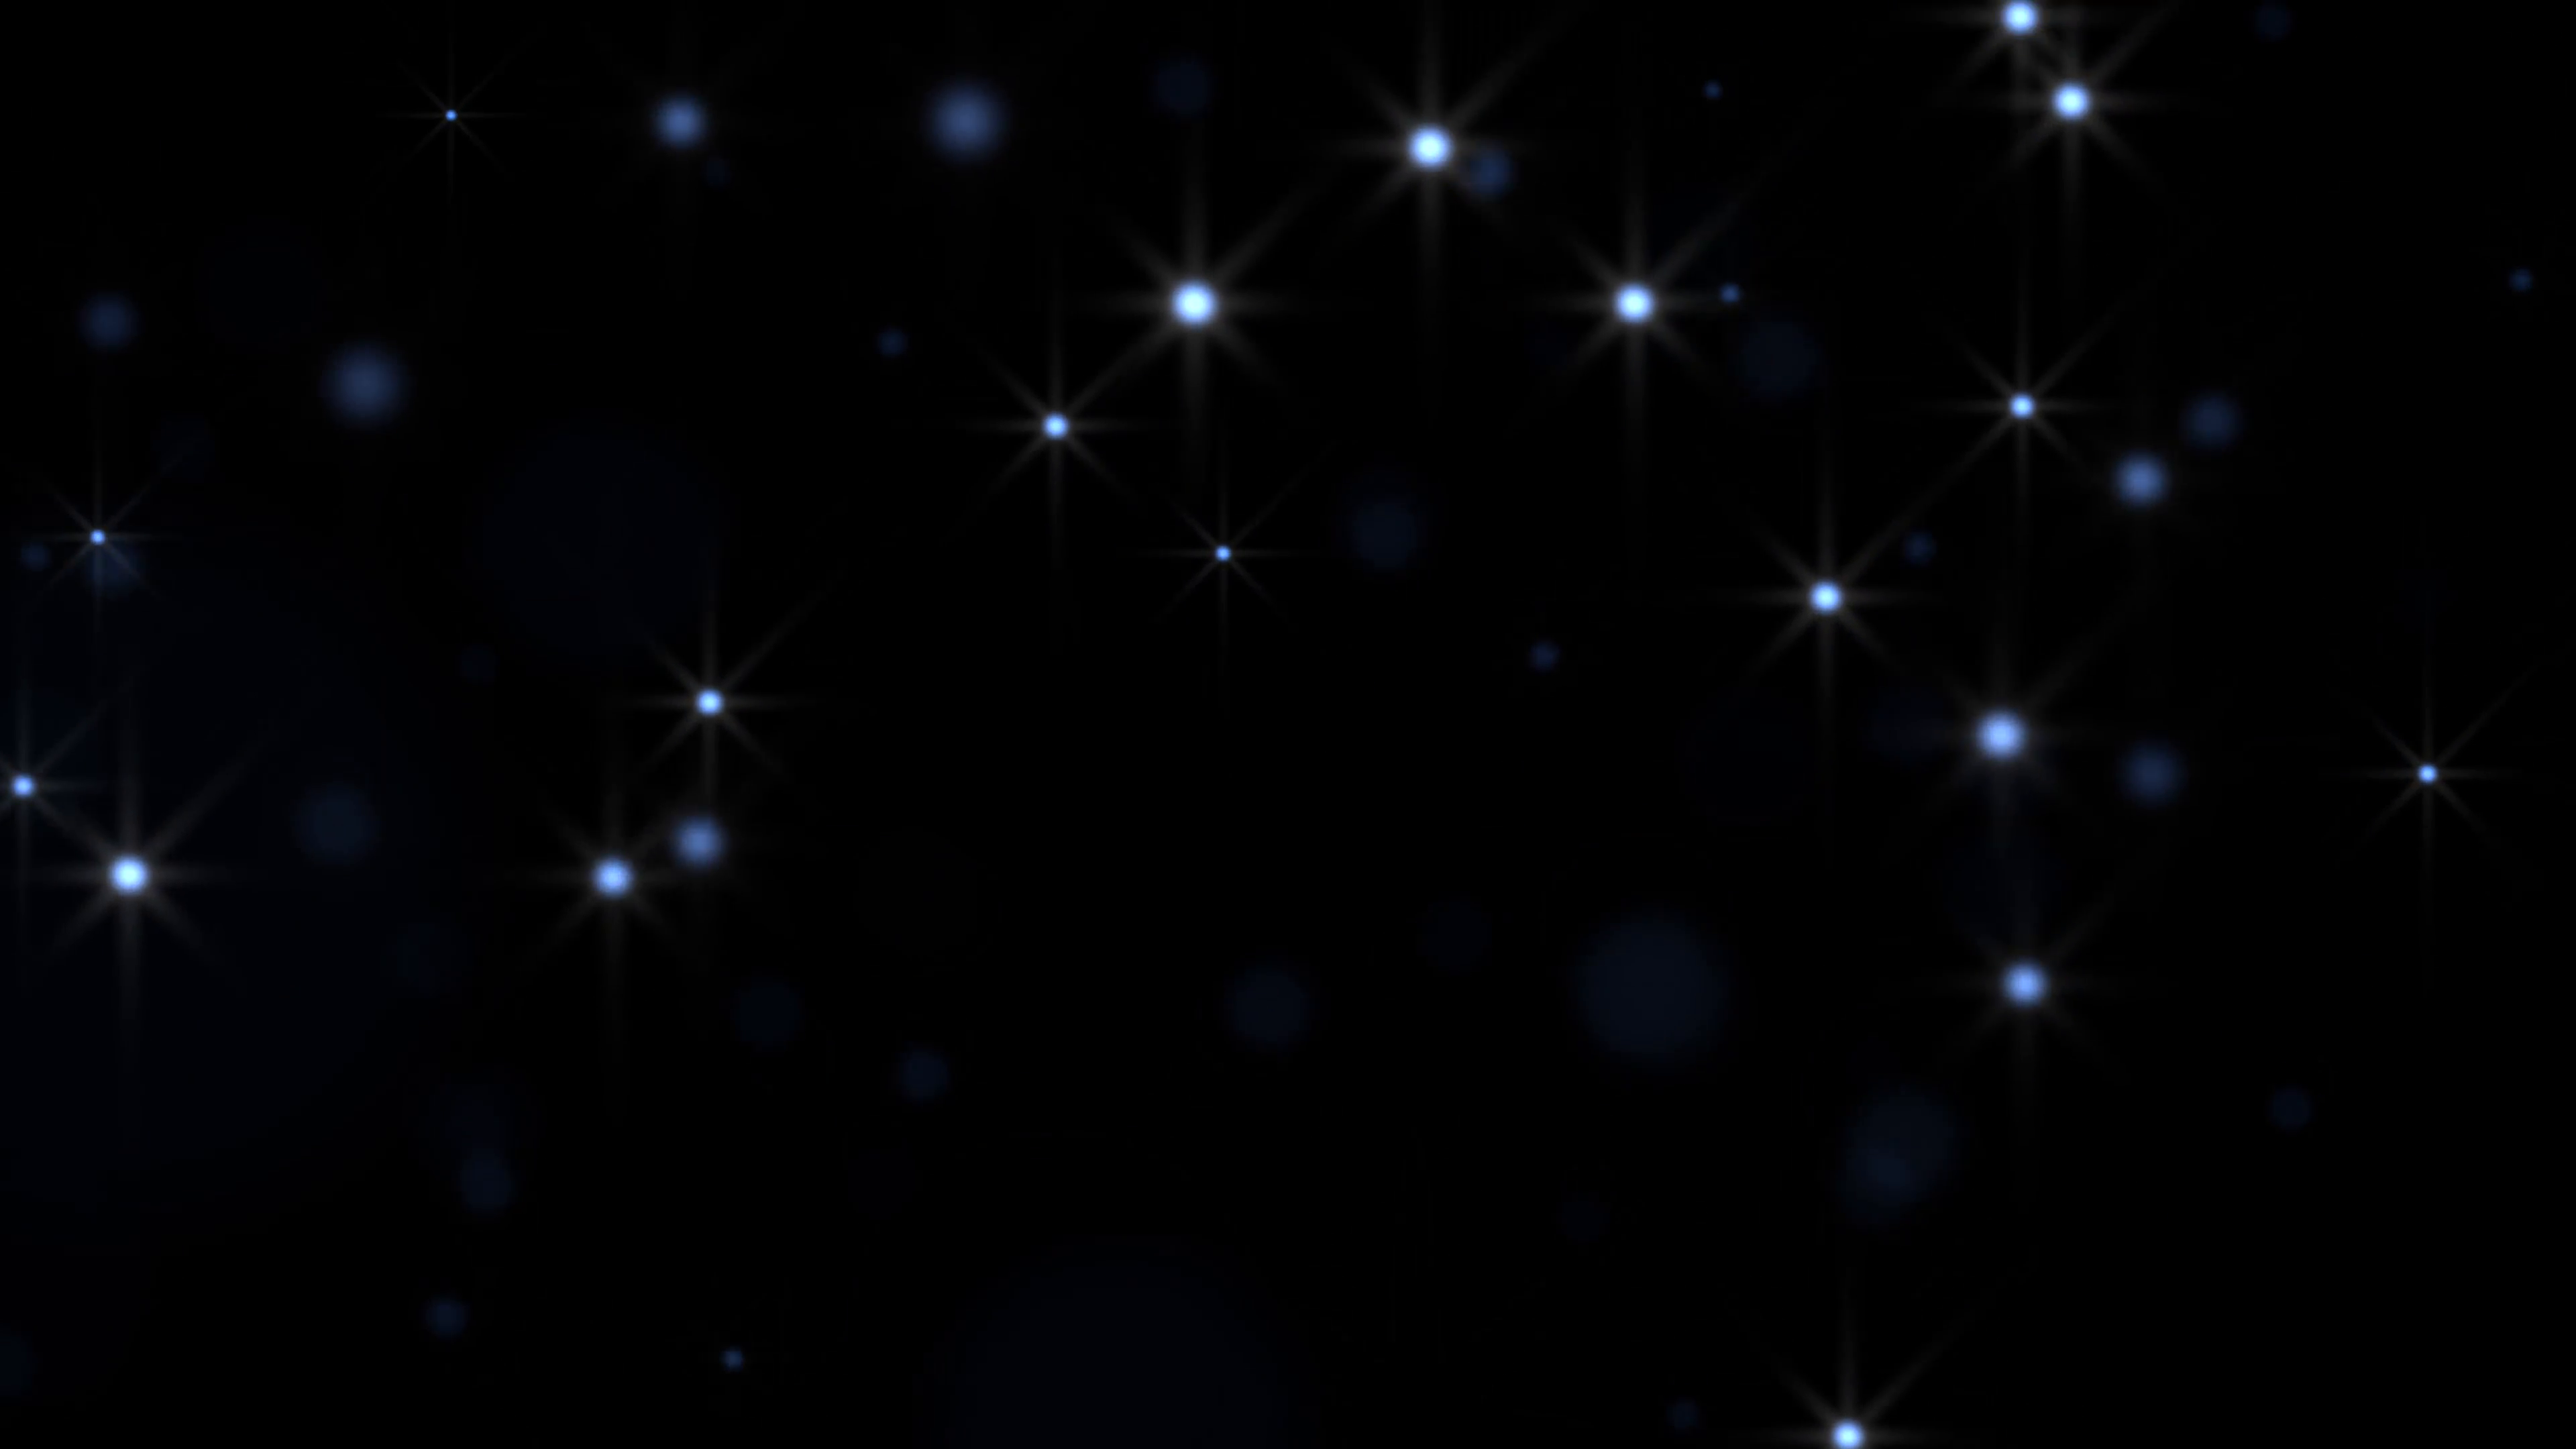 Blue glowing star particle in random direction 3D render abstract  background animation motion graphic with copy space on black background  Motion.